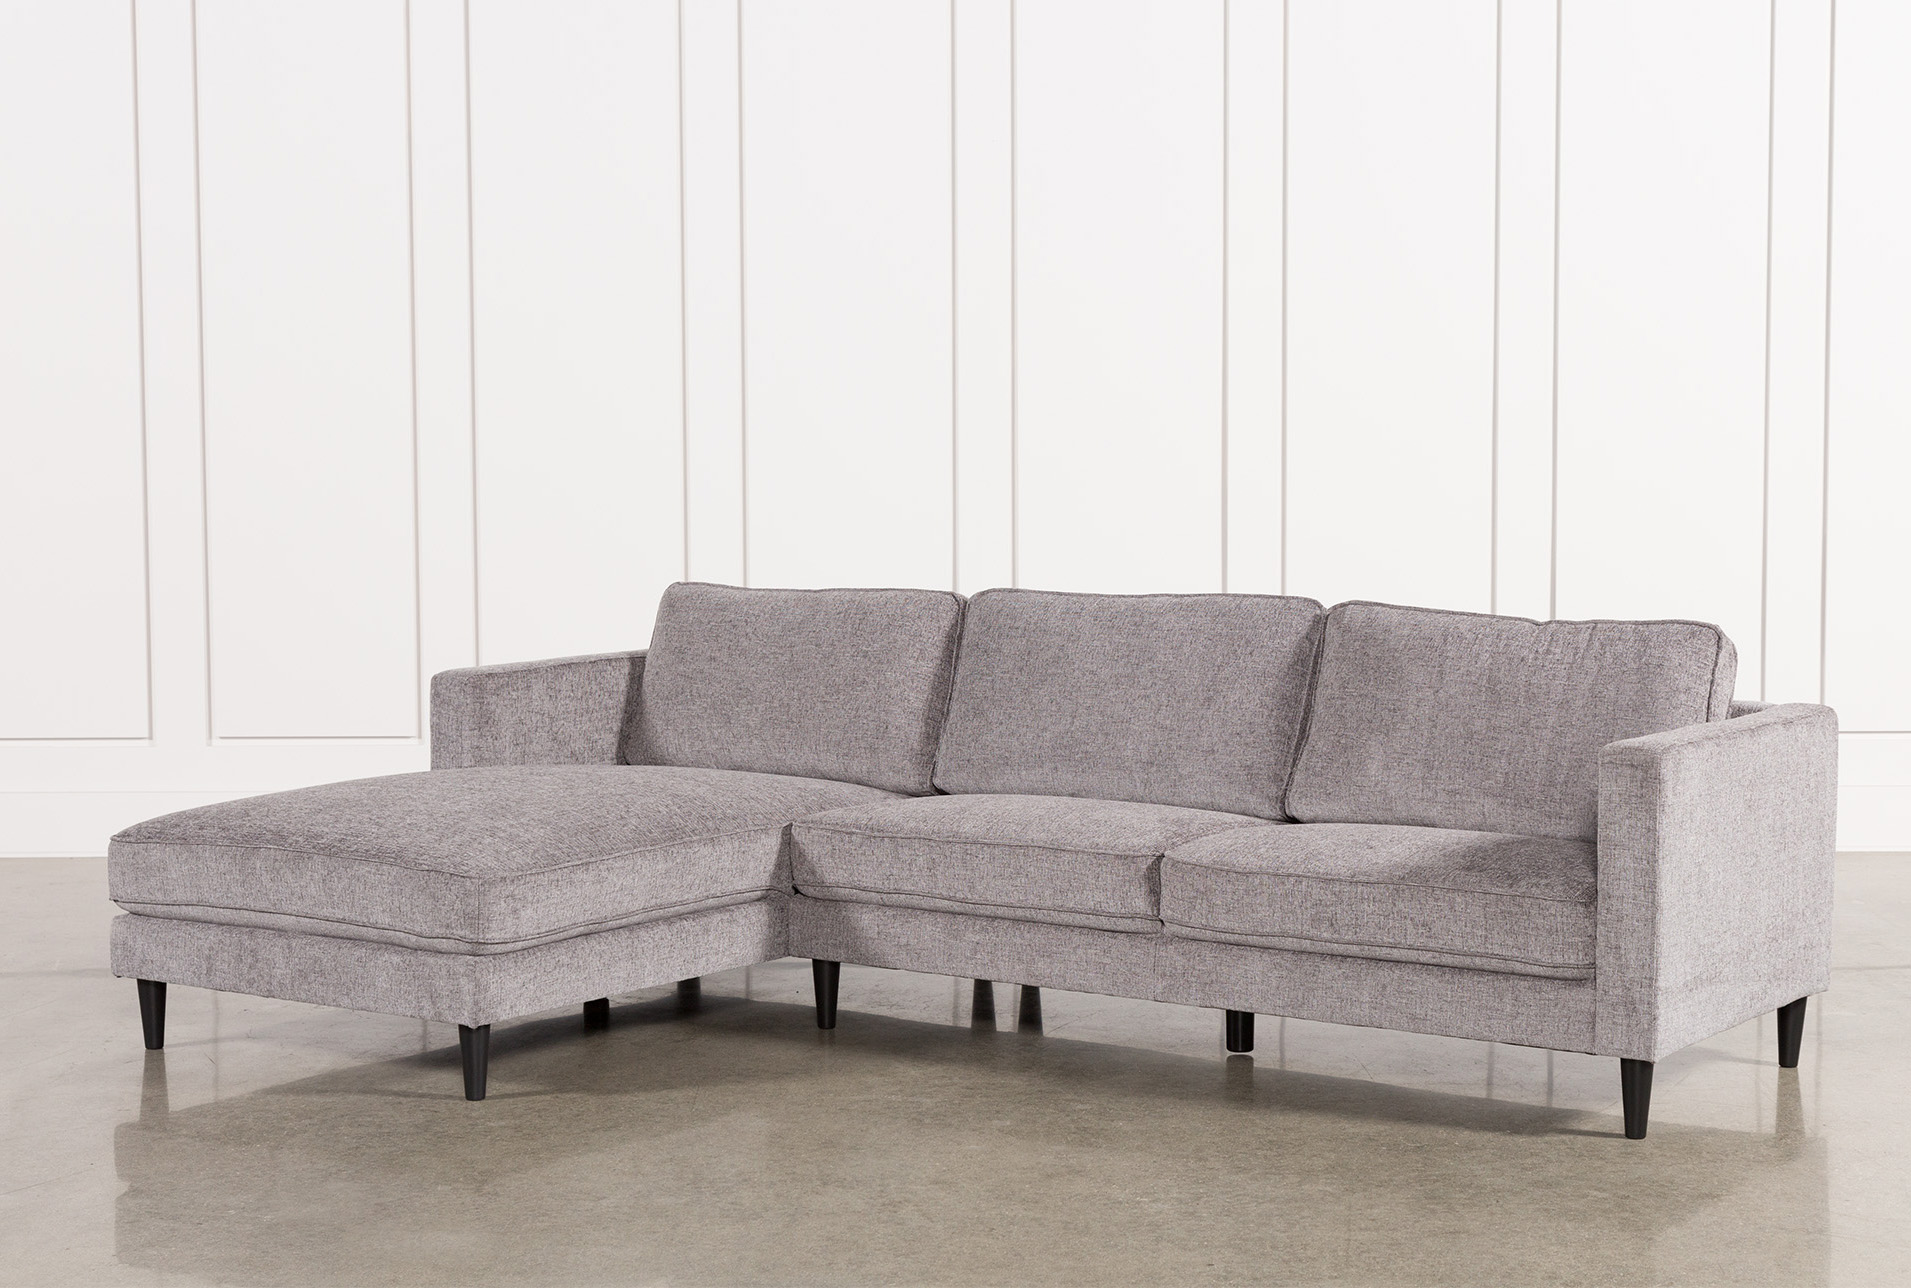 Cosmos Grey 2 Piece Sectional W/Laf Chaise (Qty: 1) Has Been Successfully  Added To Your Cart.